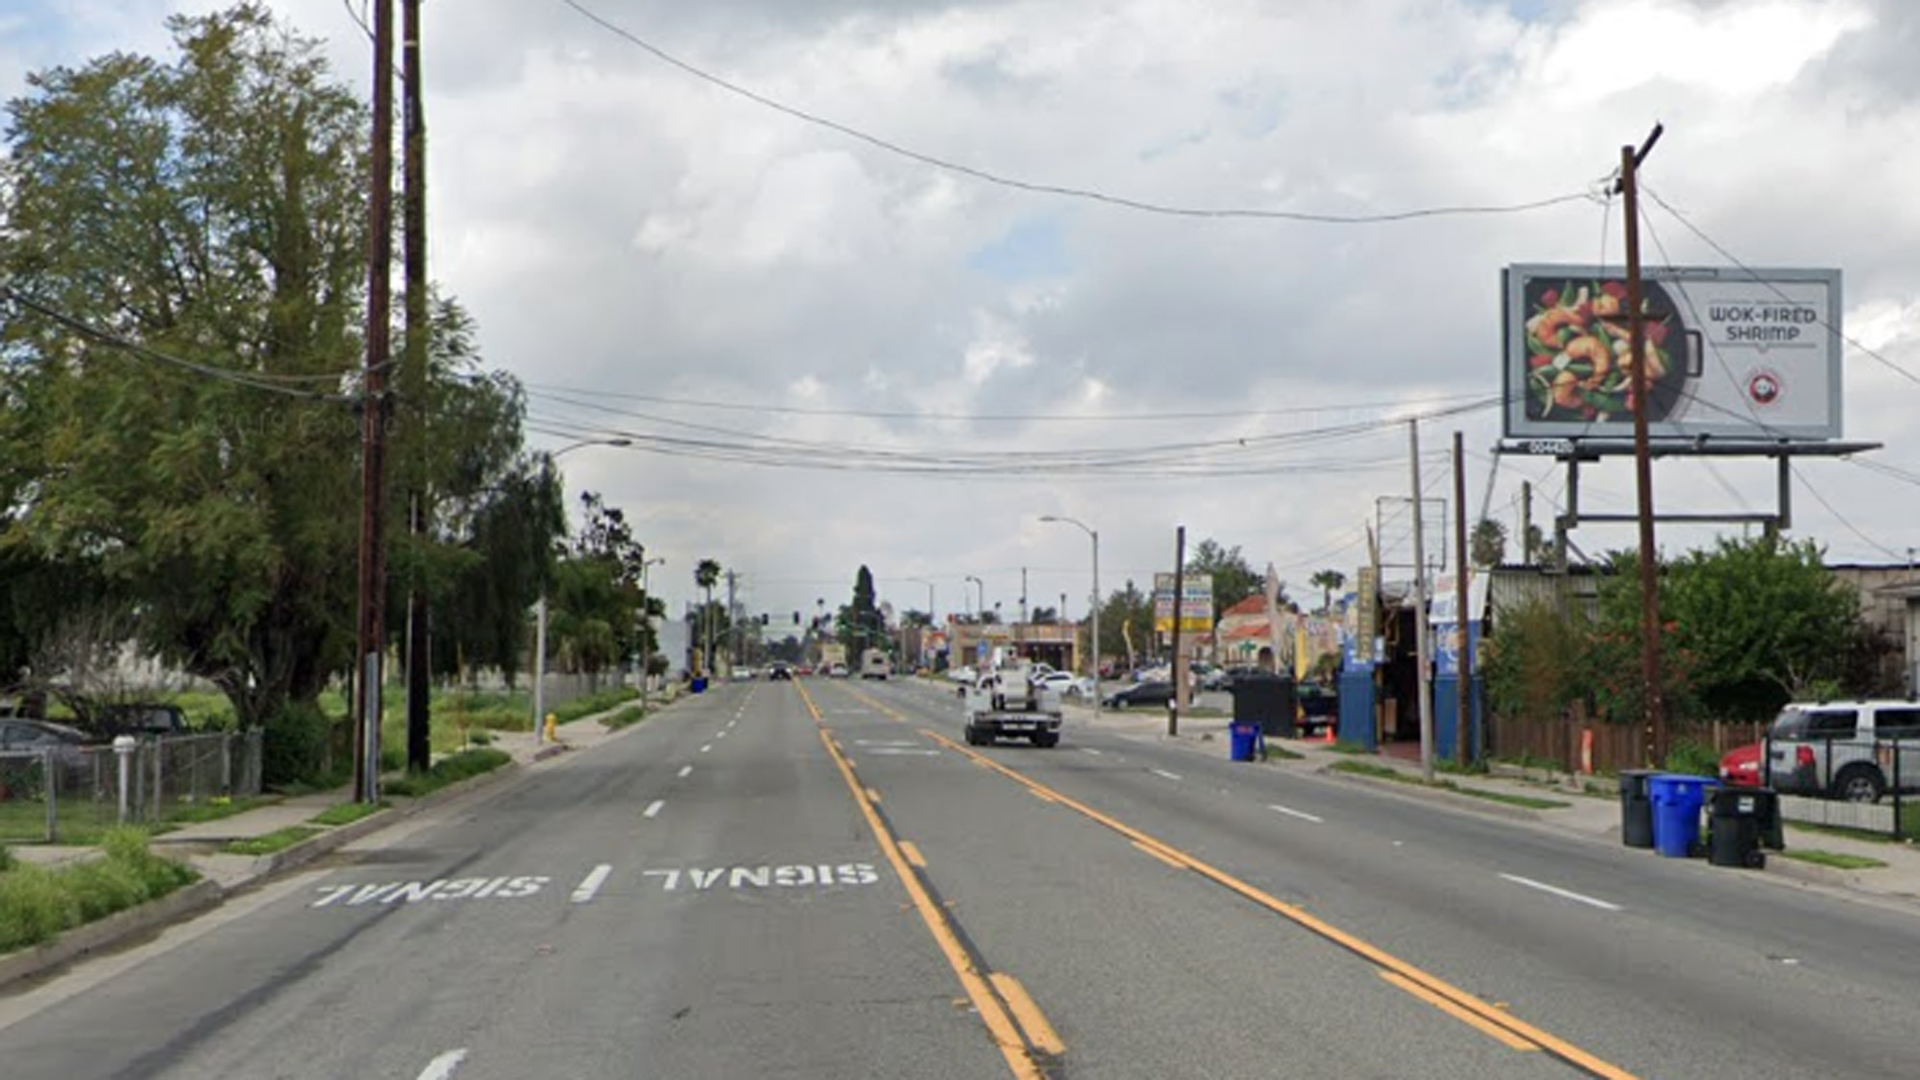 The 1100 block of Fifth Street in San Bernardino is seen in a Google Maps image.